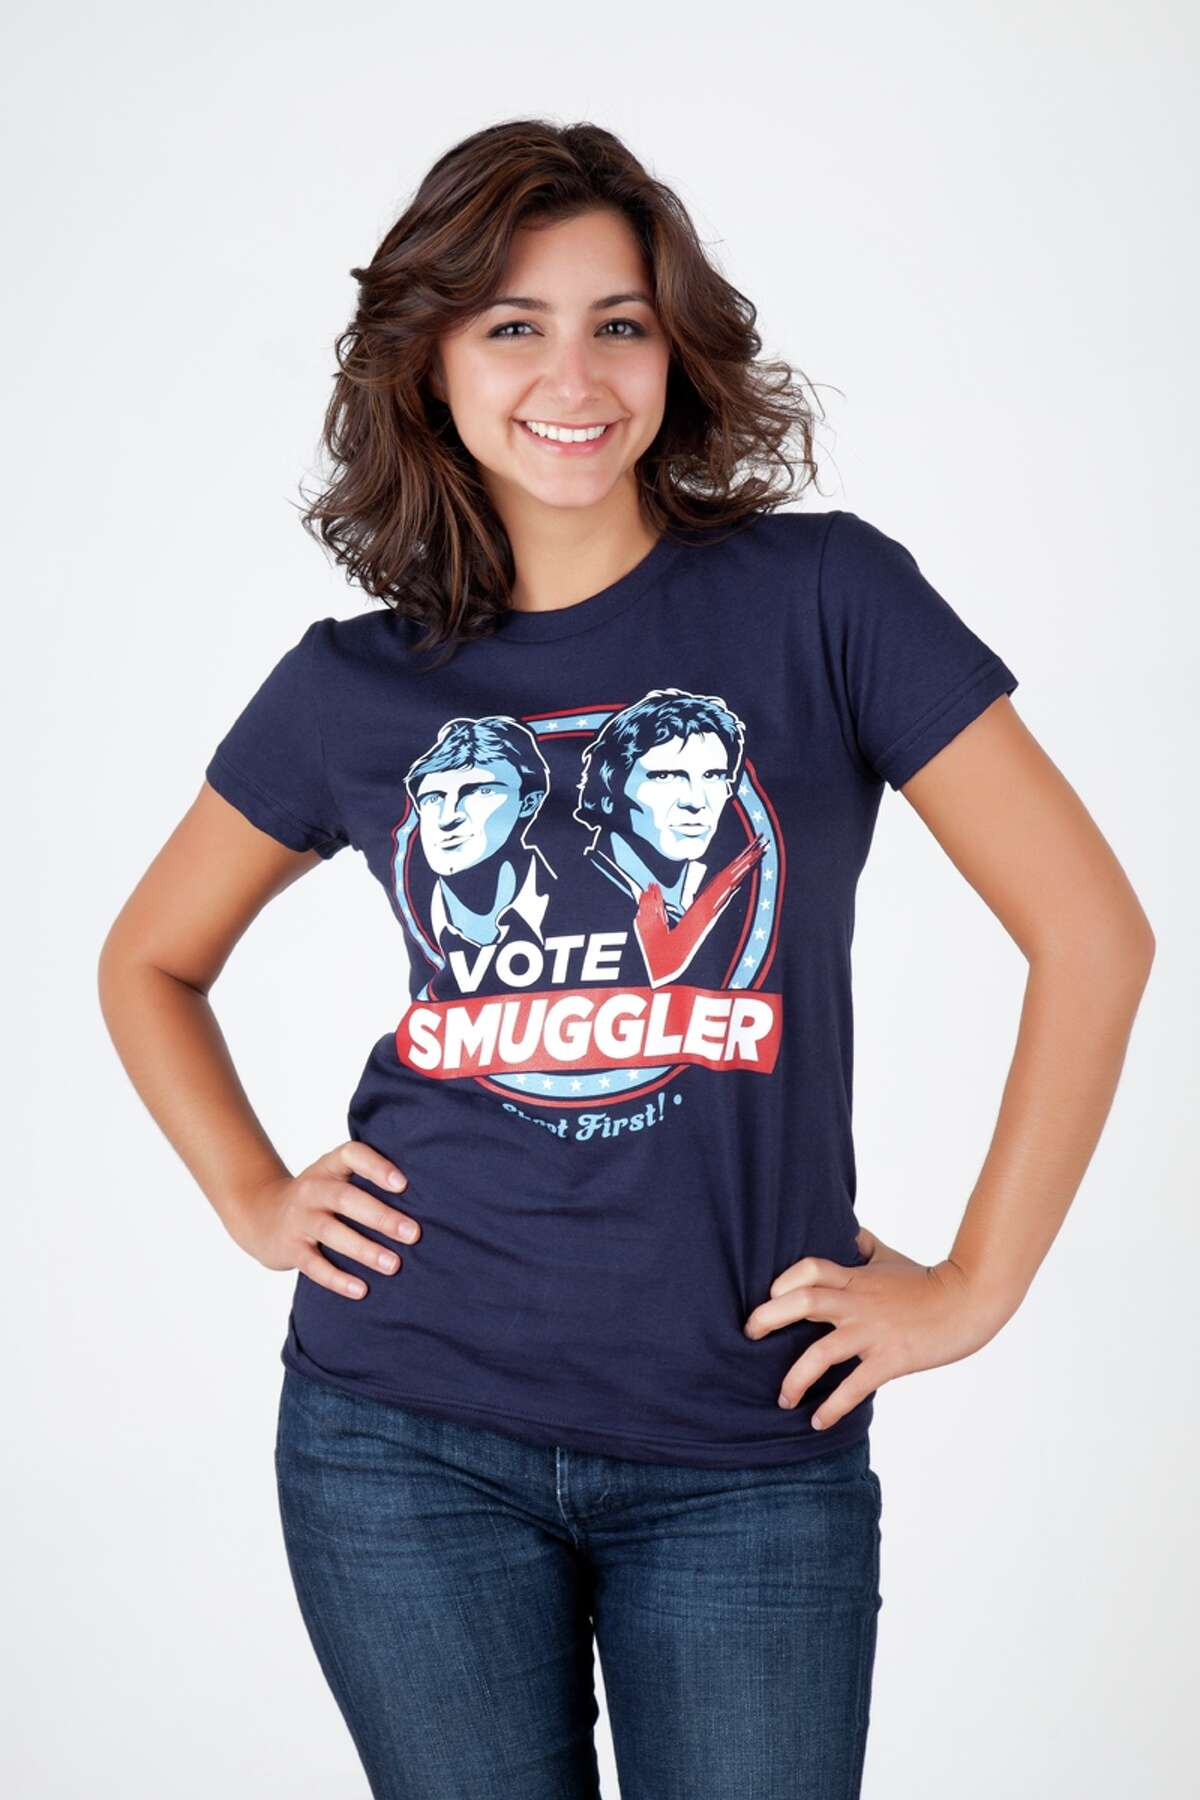 """Ian Leino's """"Vote Smuggler"""" T-shirt pays homage to two of sci-fi's most lovable scoundrels: Han Solo and Mal Reynolds."""